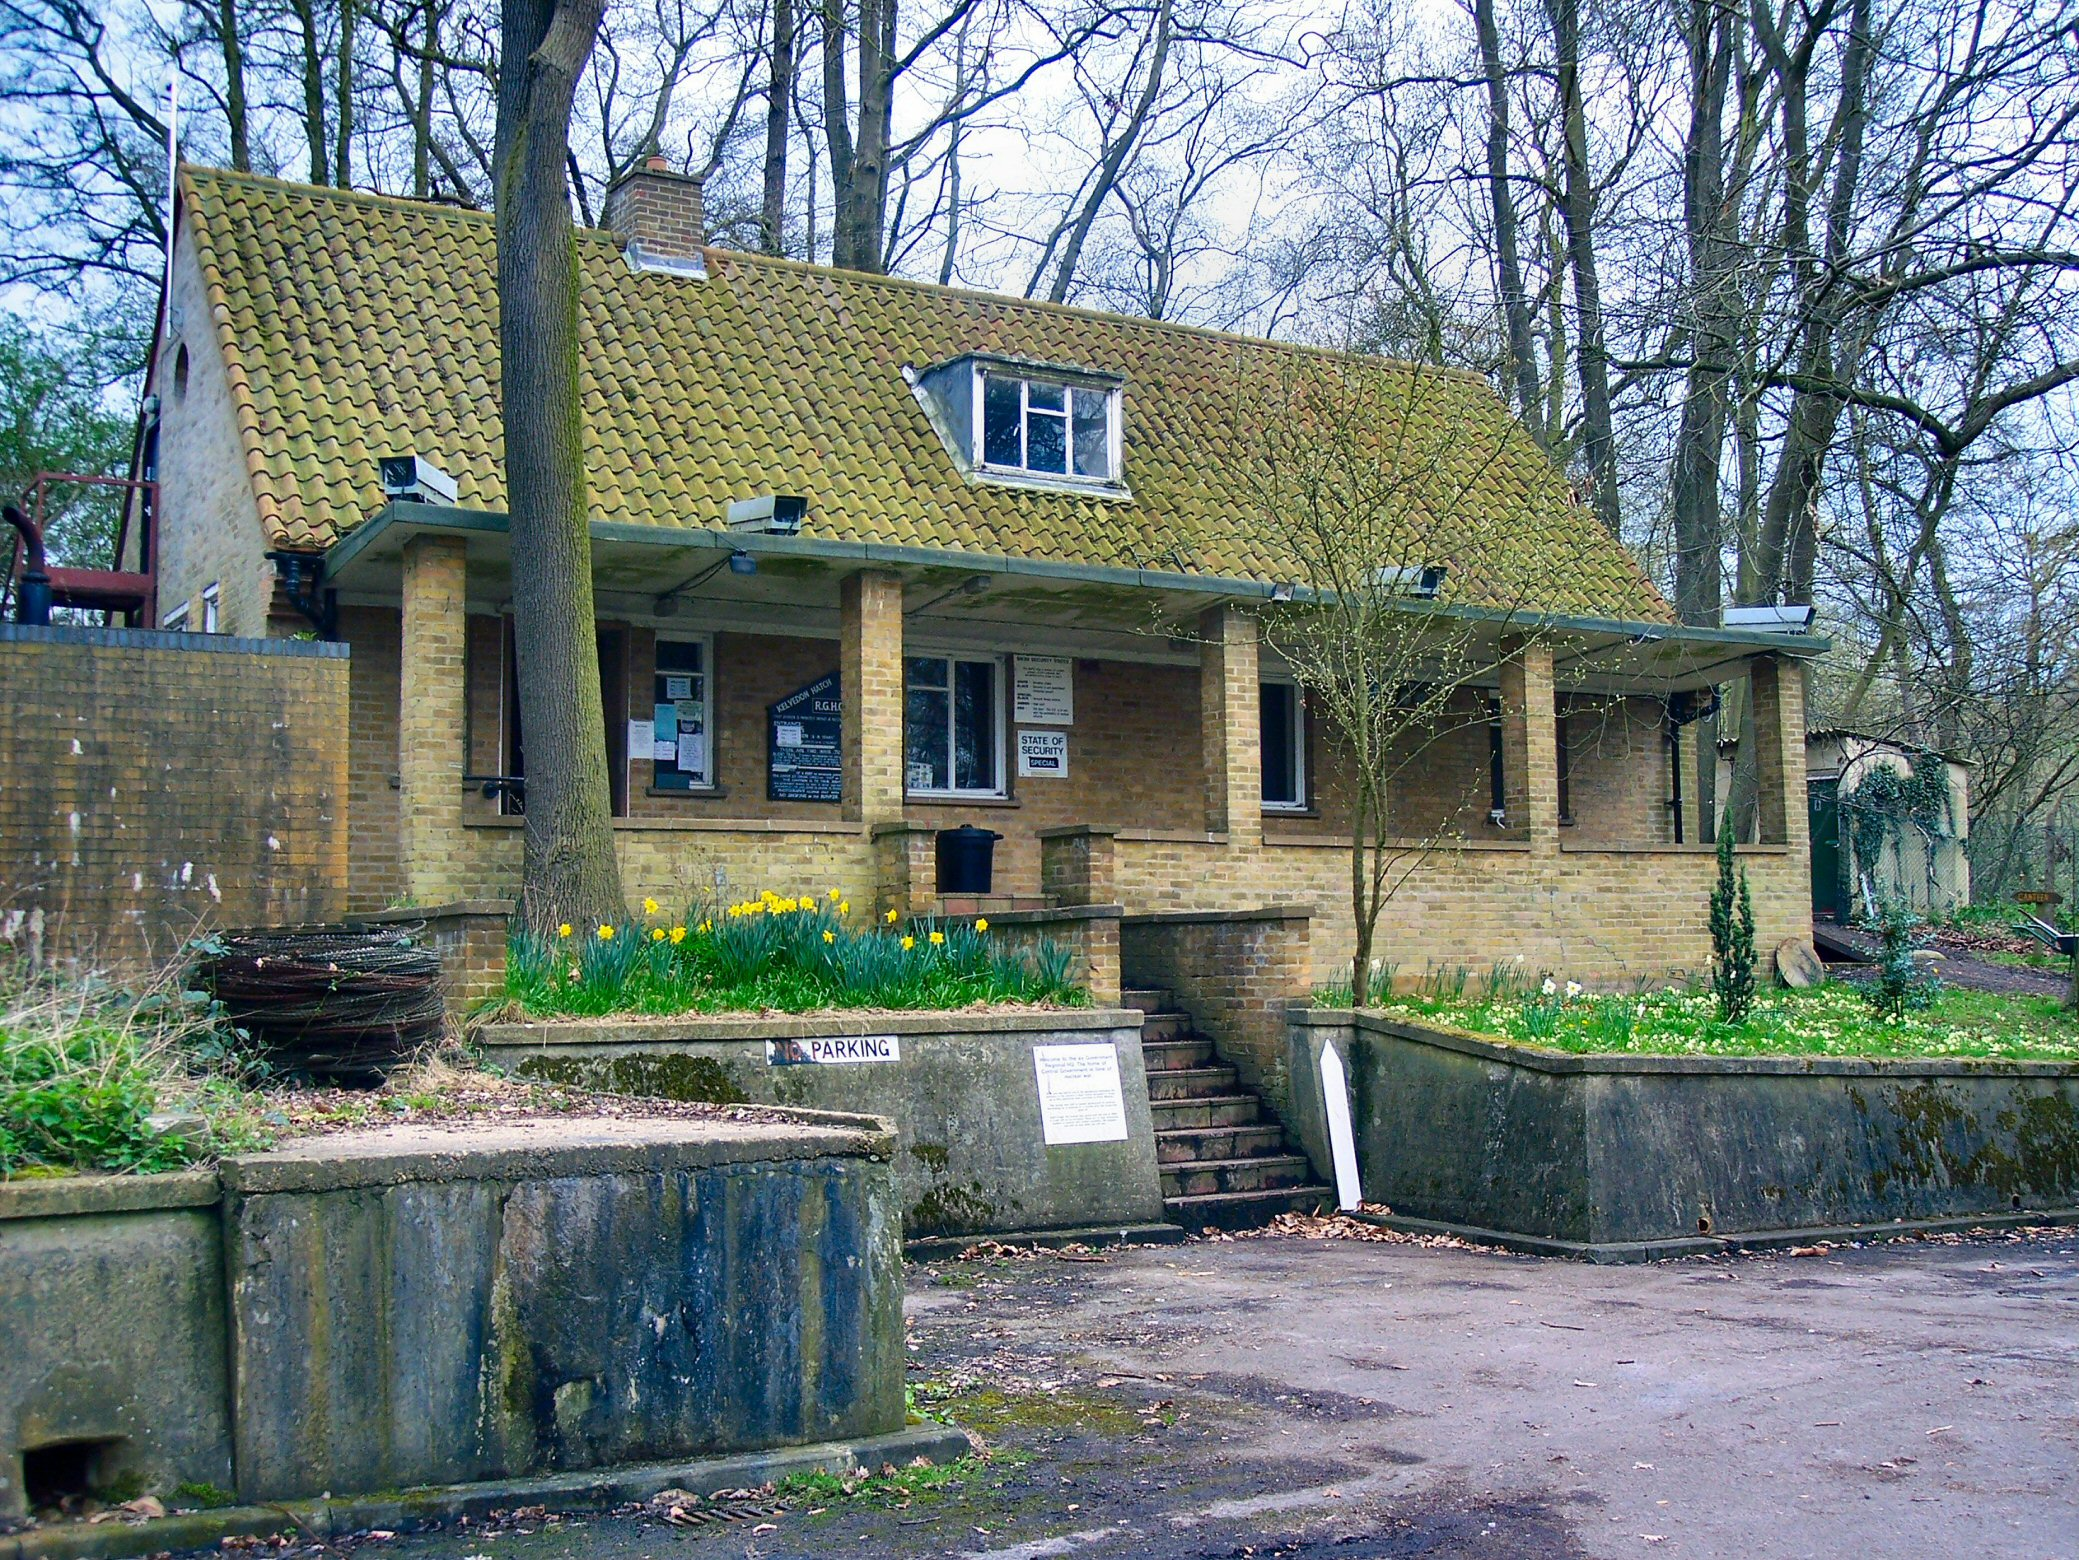 What About Those Nuclear Bunker >> Kelvedon Hatch Secret Nuclear Bunker Wikipedia